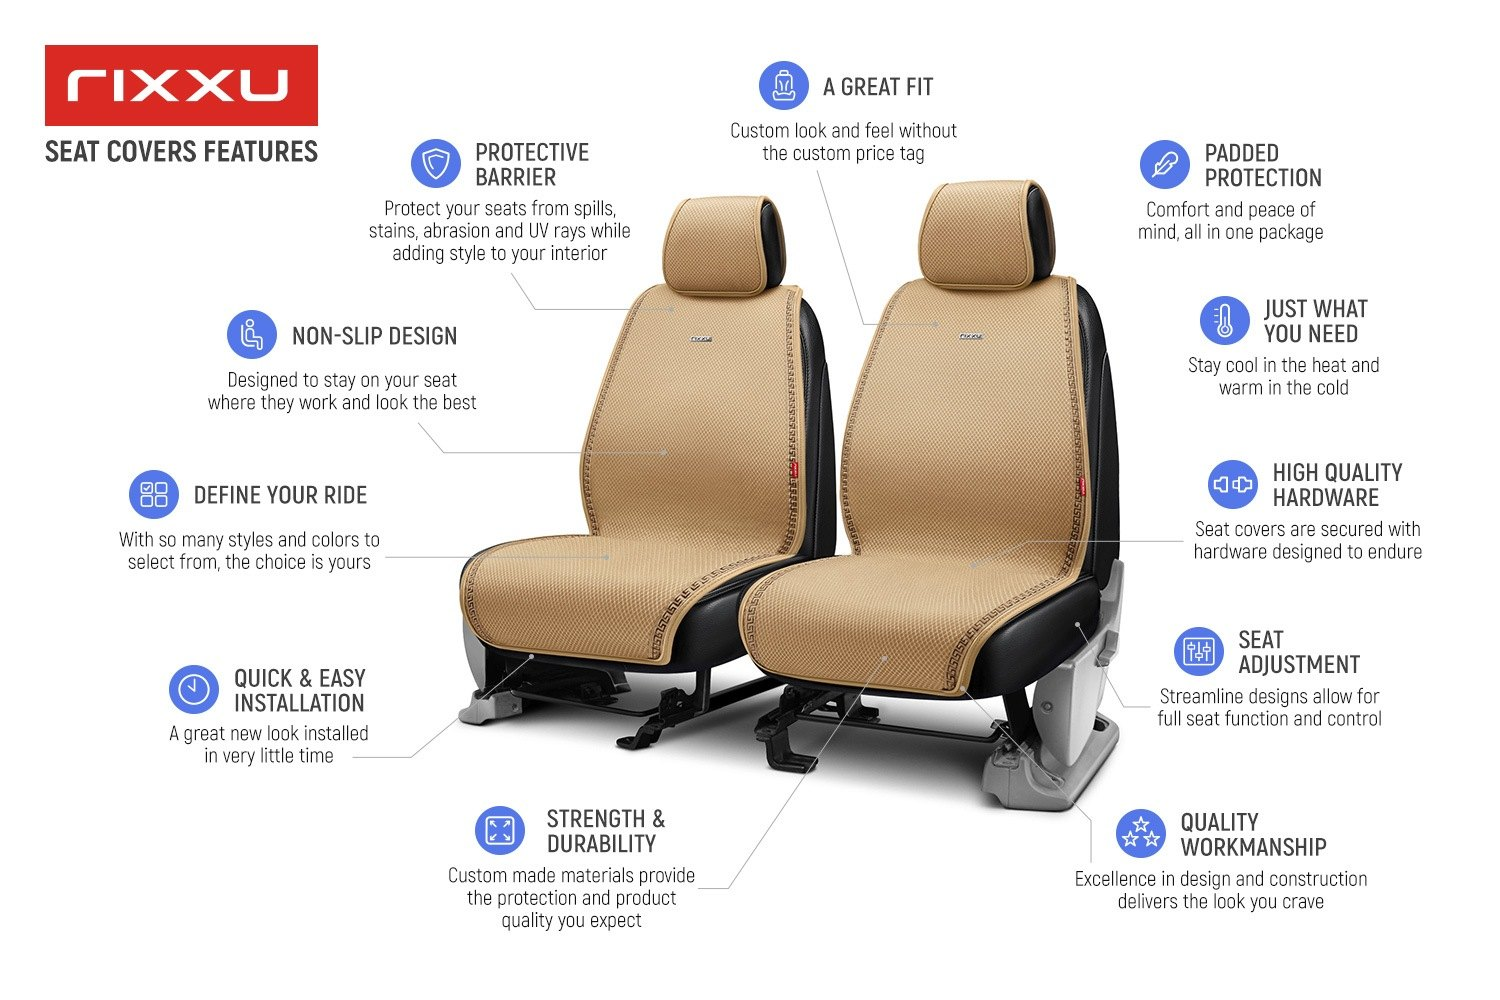 Slimline Series Seat Covers Features